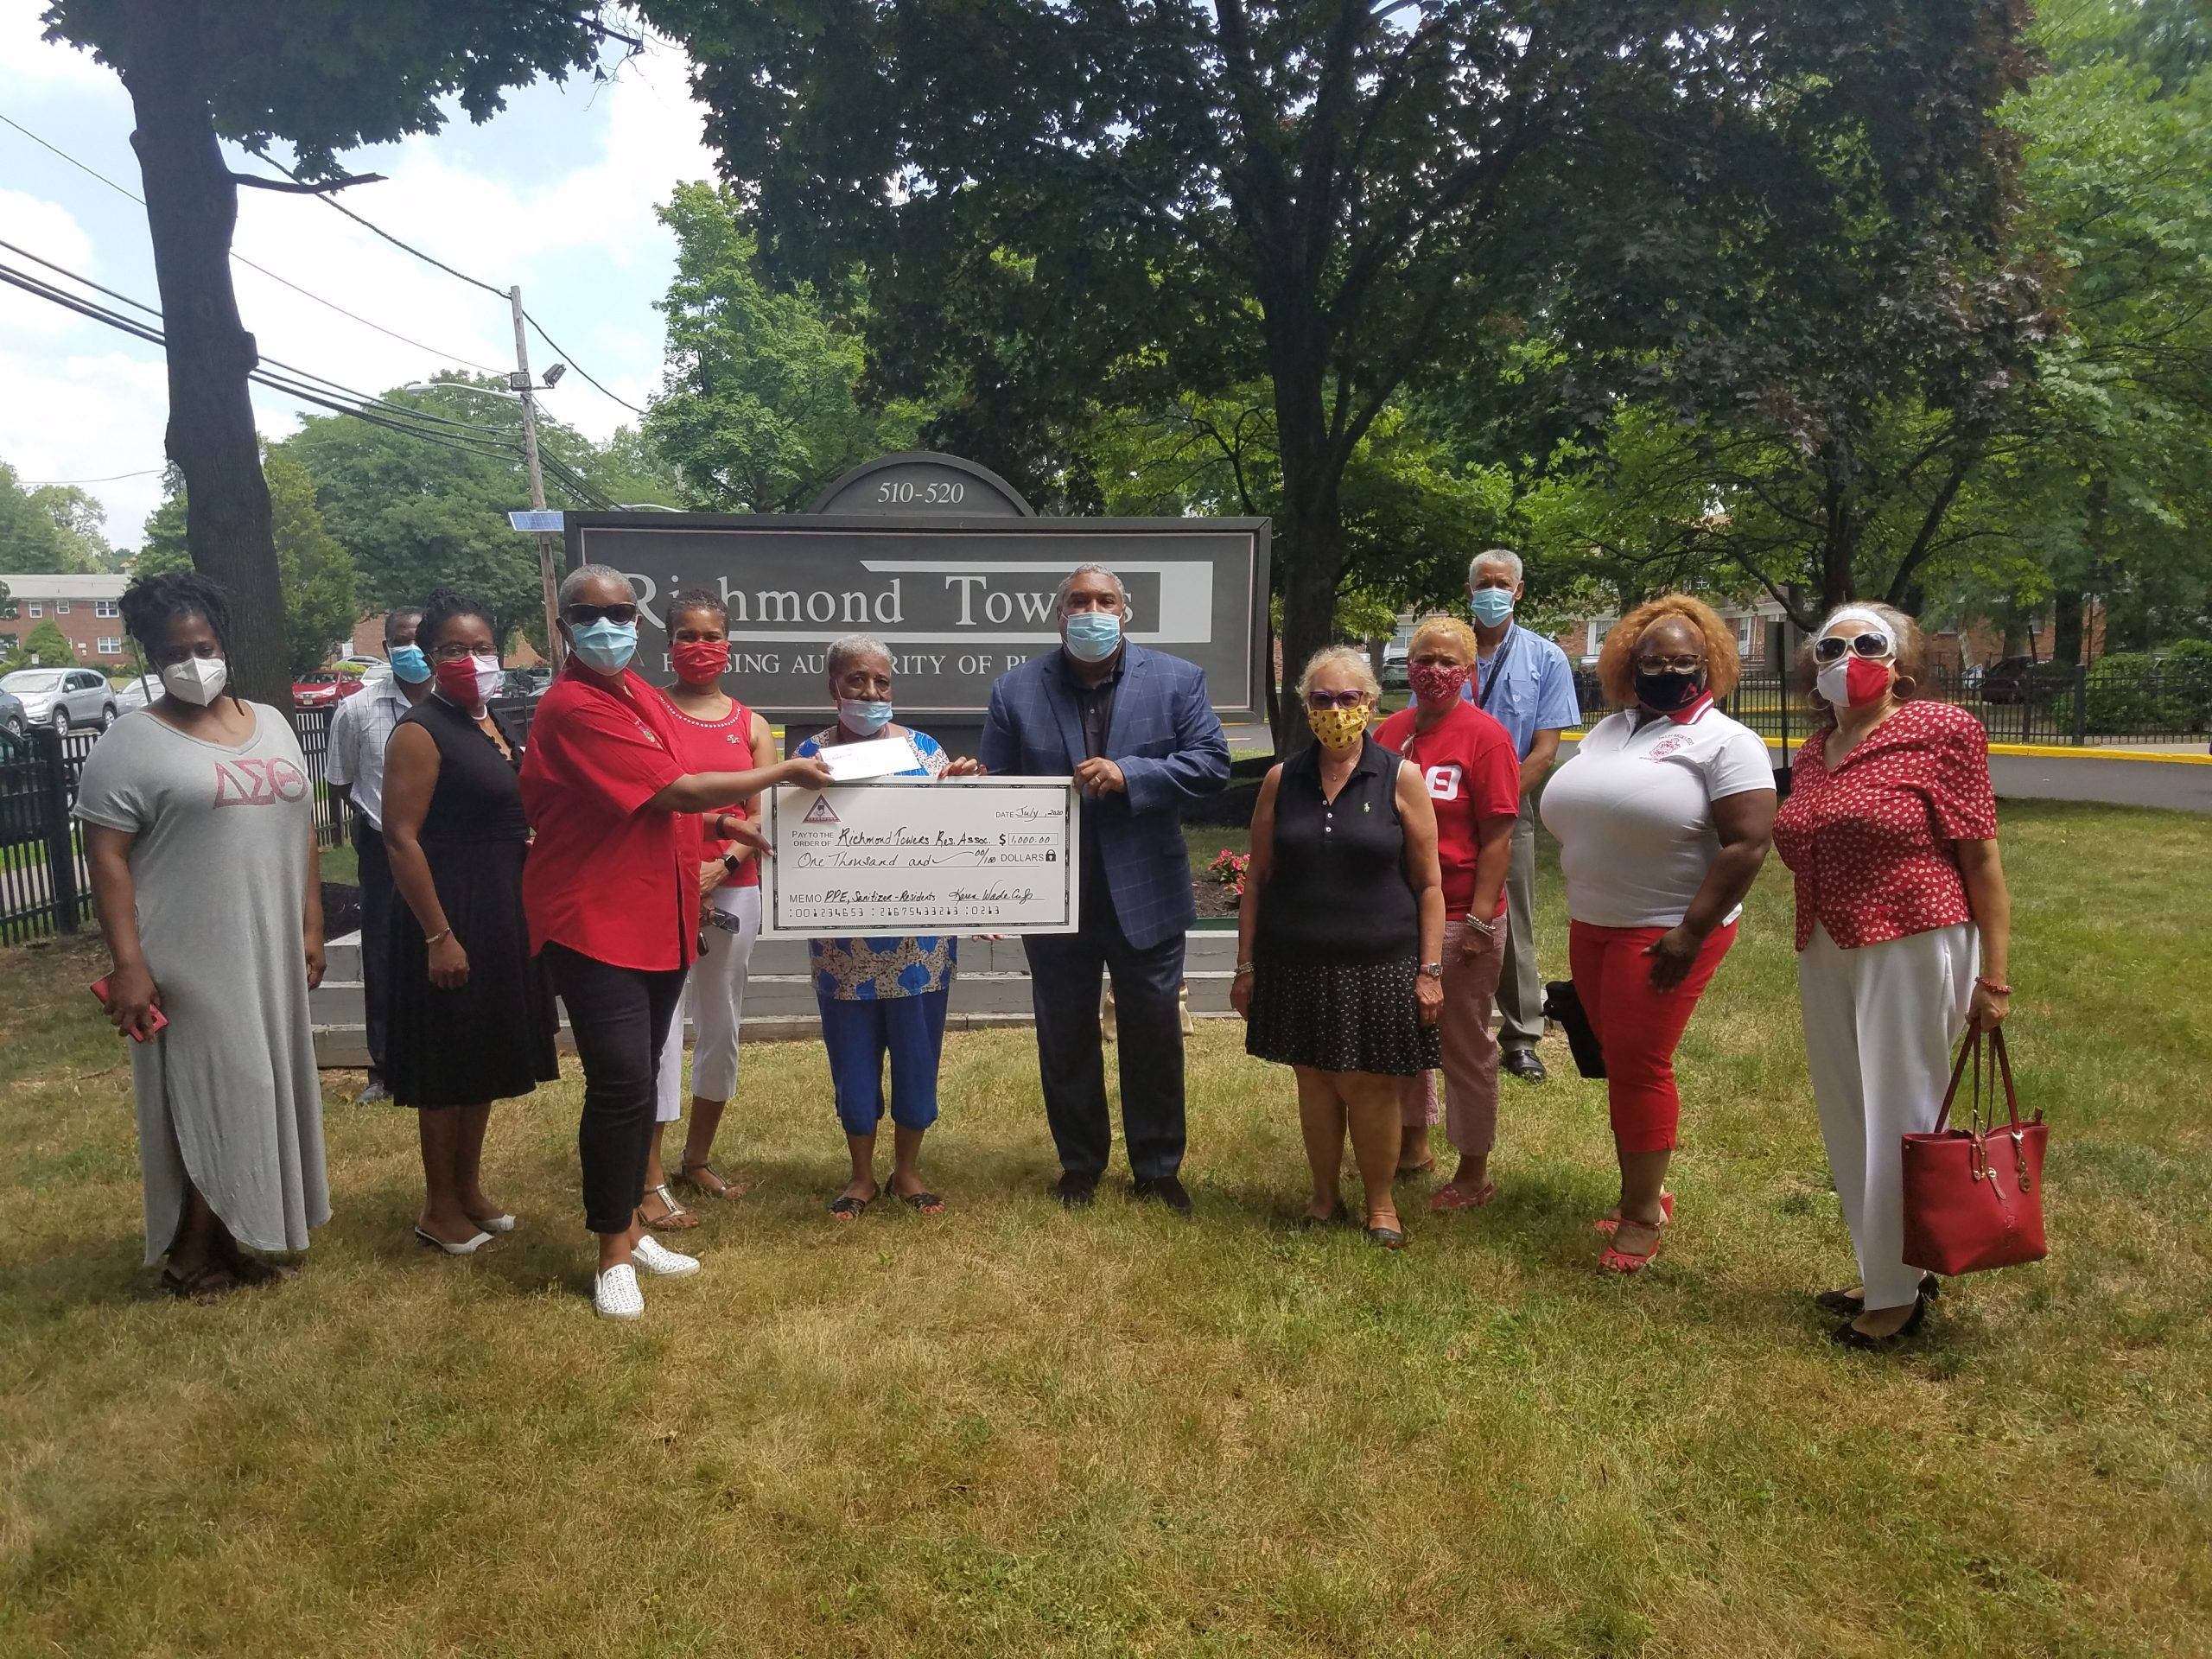 CJA Deltas post with check given the Richmond Towers